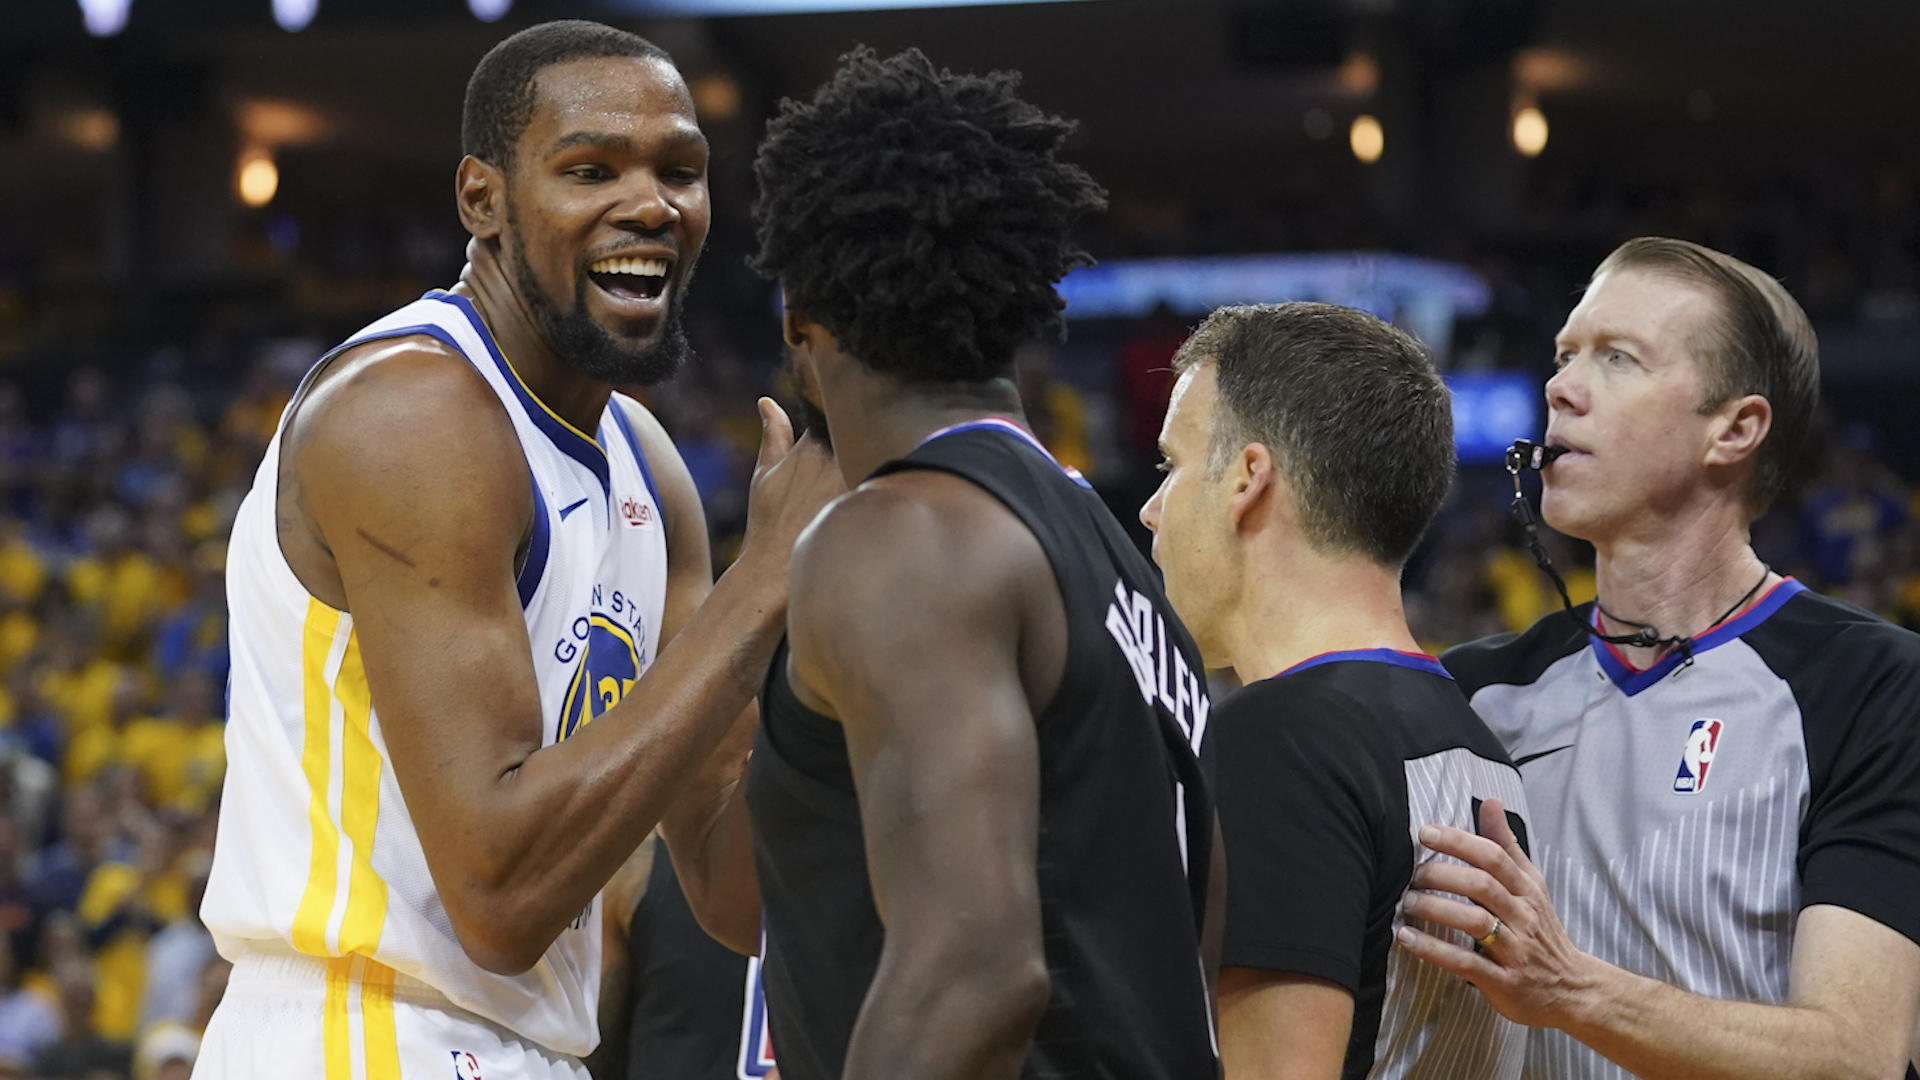 NBA Playoffs 2019: Warriors complained to league about Patrick Beverley's defense on Kevin Durant, per report